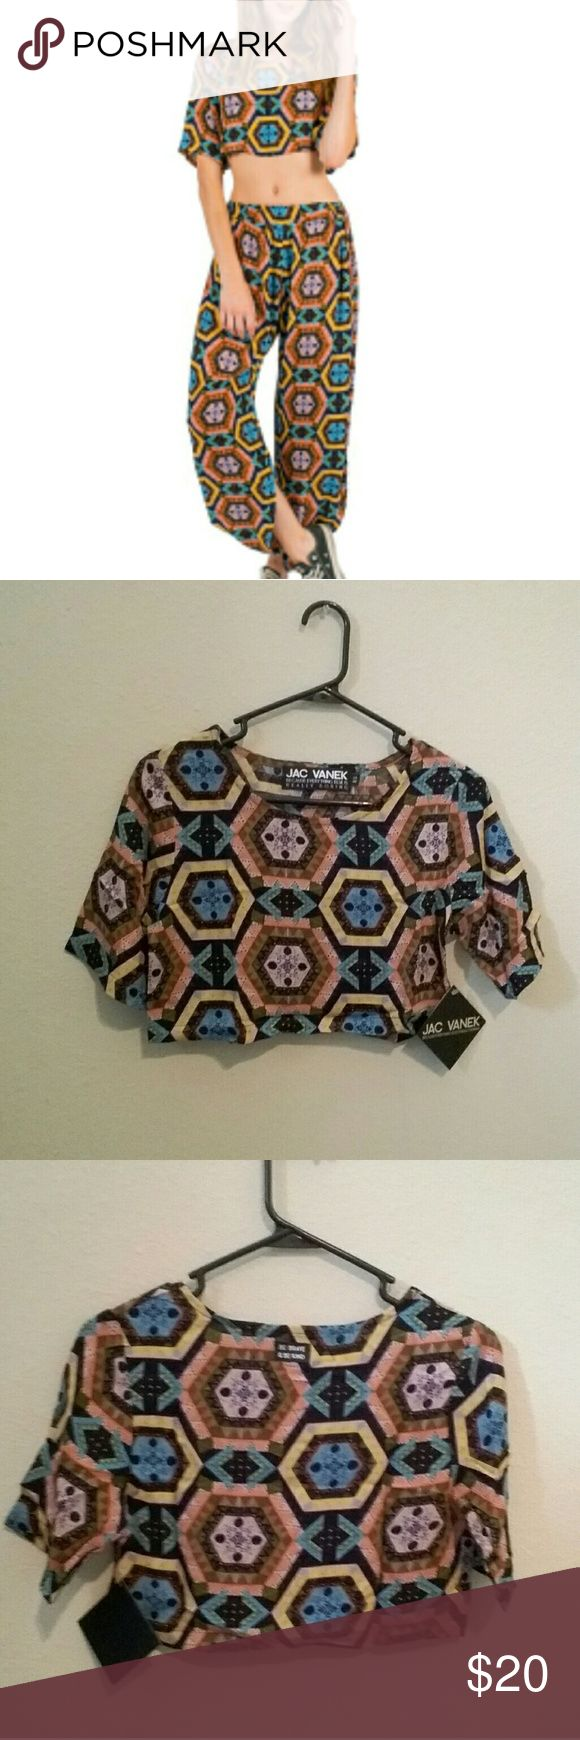 FLASH SALE! NWT Kaleidoscope Crop Top RARE New with tags crop top. Super cute. True to size. TOP ONLY. You won't find this anywhere but Poshmark! Jac Vanek Tops Crop Tops